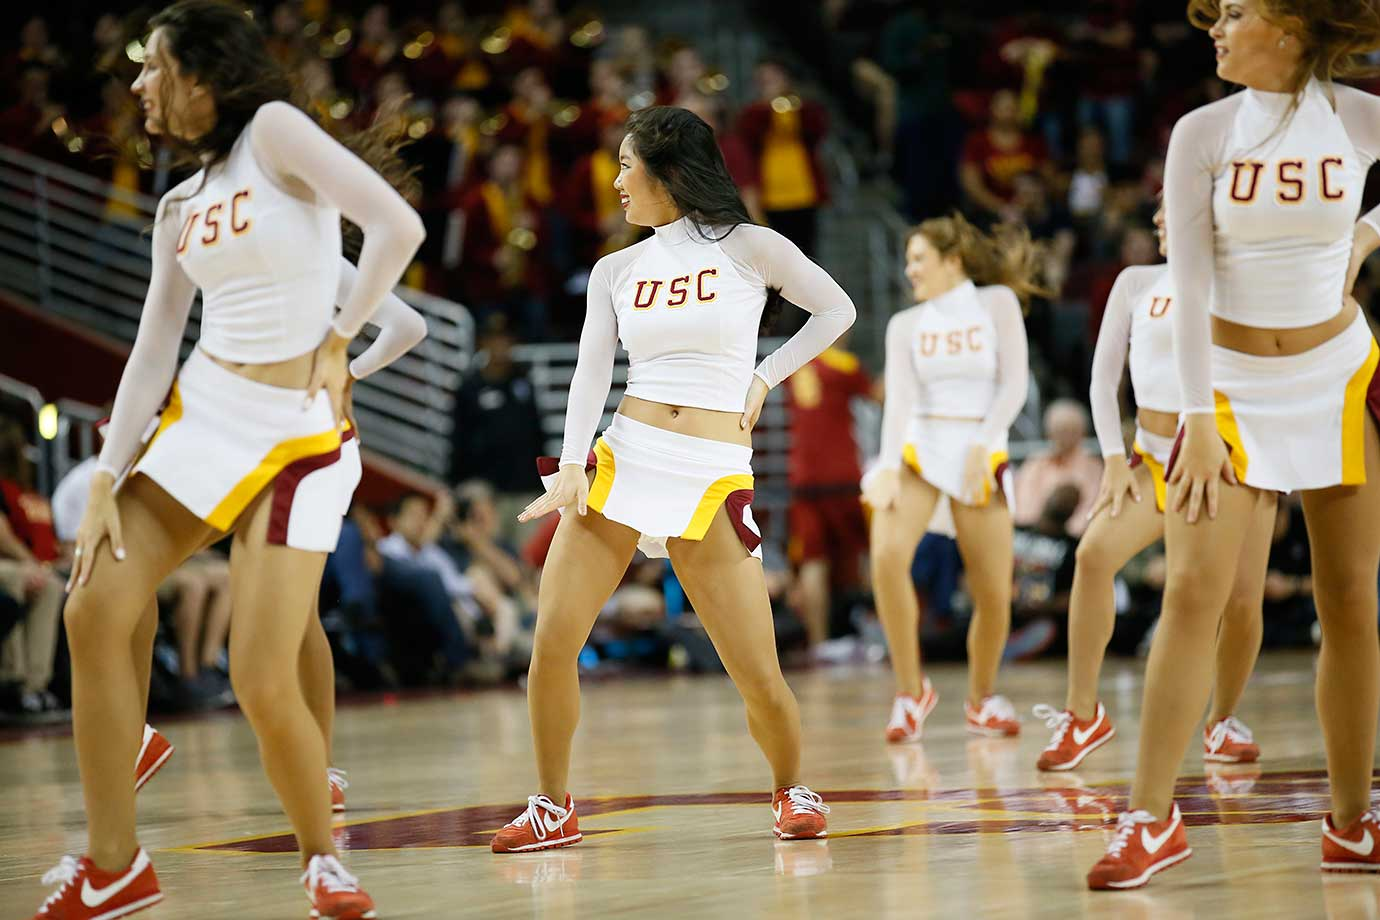 The Southern California song girls cheerleaders perform during a break between USC and Utah.